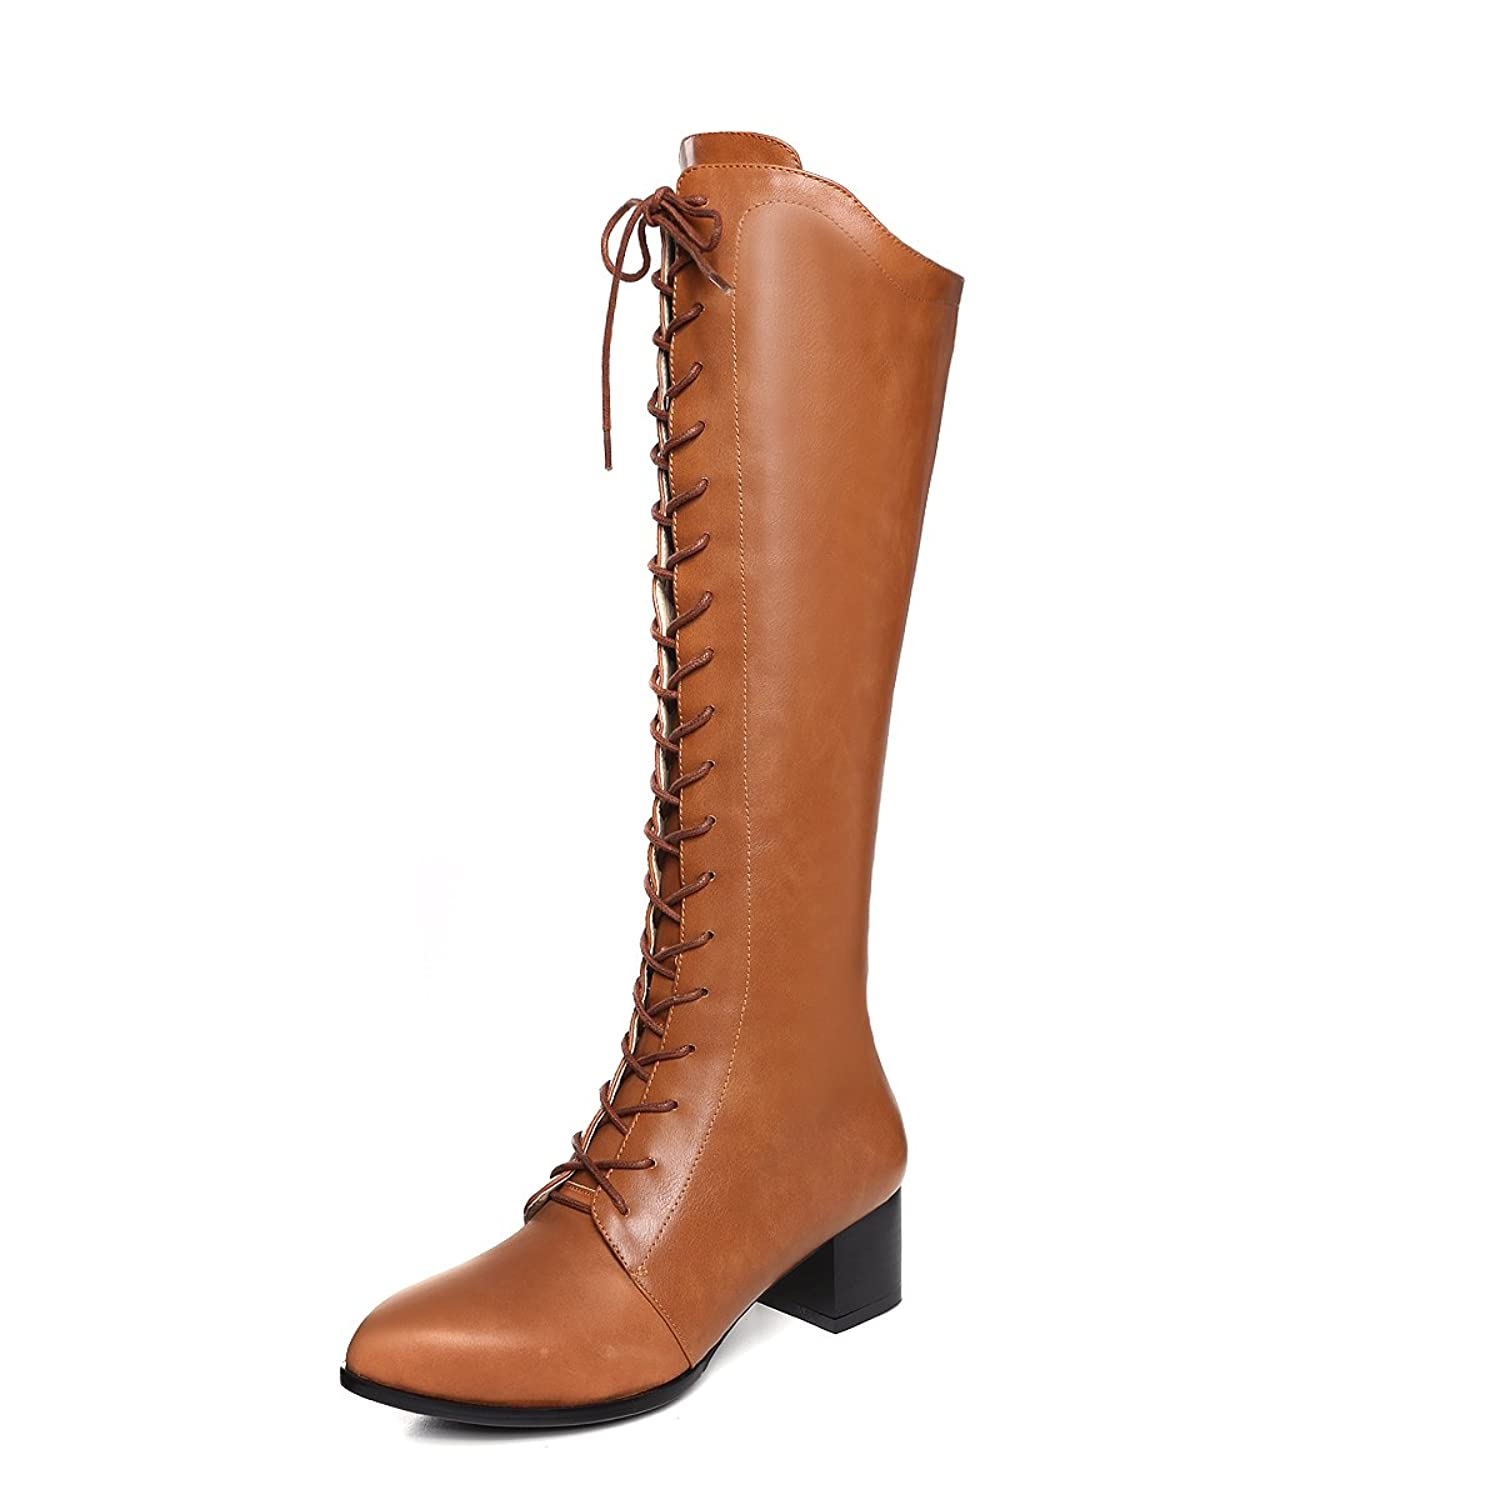 Vintage Boots, Granny Boots, Retro Boots NIQI Genuine Leather Womens Mid Heel Knee High Booties Side Zipper Combat Military Motorcycle Boots $89.00 AT vintagedancer.com